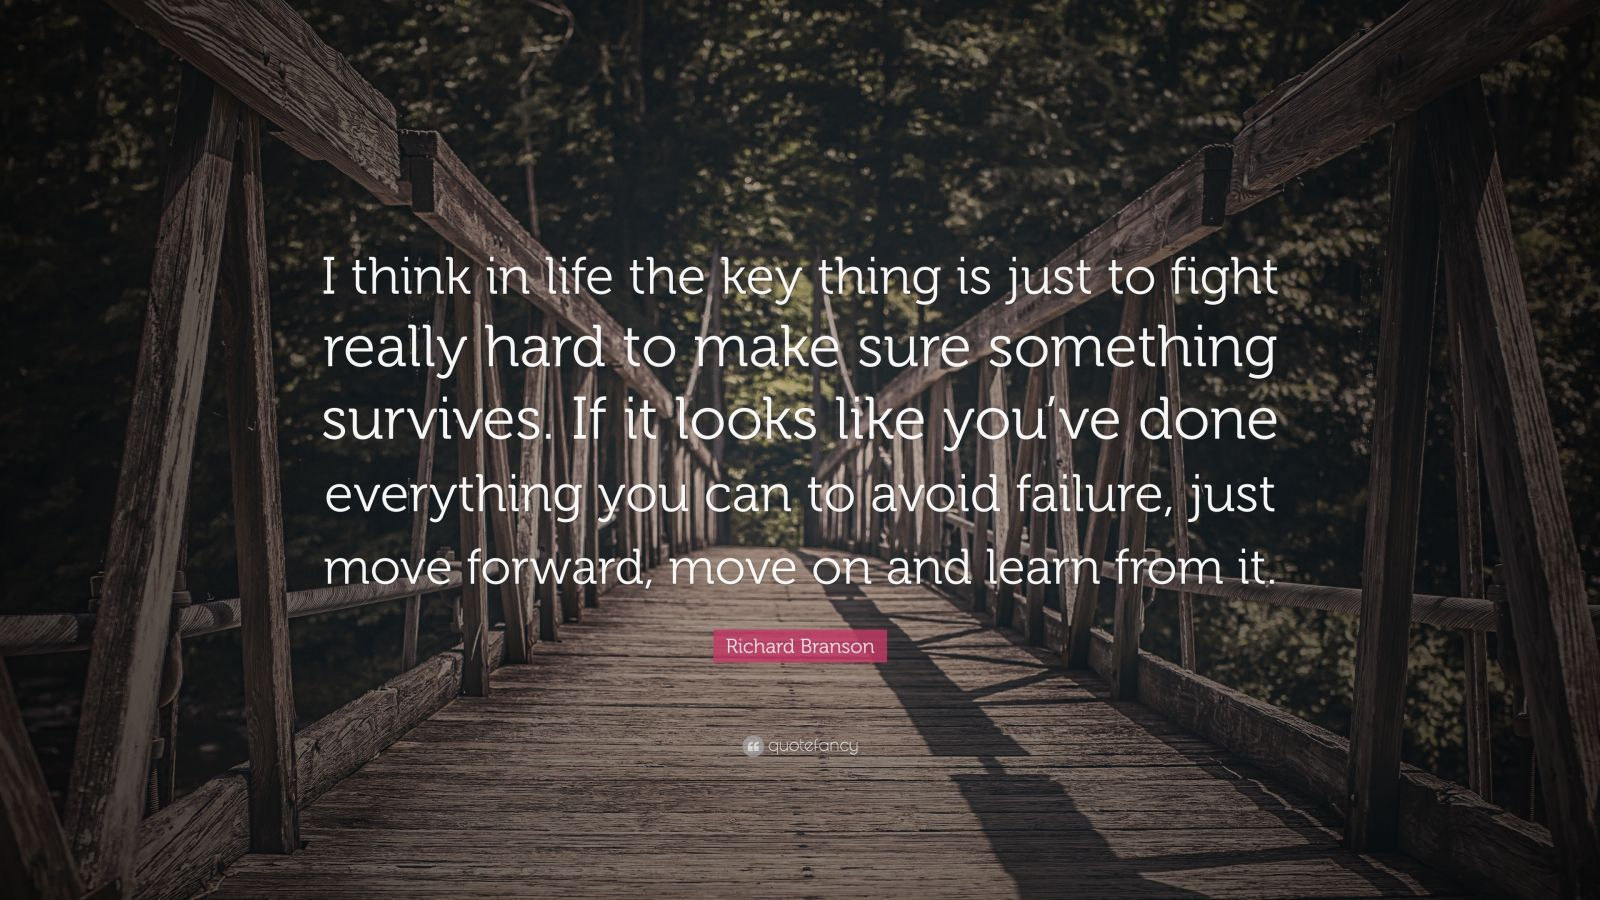 """Richard Branson Quote: """"I think in life the key thing is just to fight really hard to make sure something survives. If it looks like you've done everything you can to avoid failure, just move forward, move on and learn from it."""""""